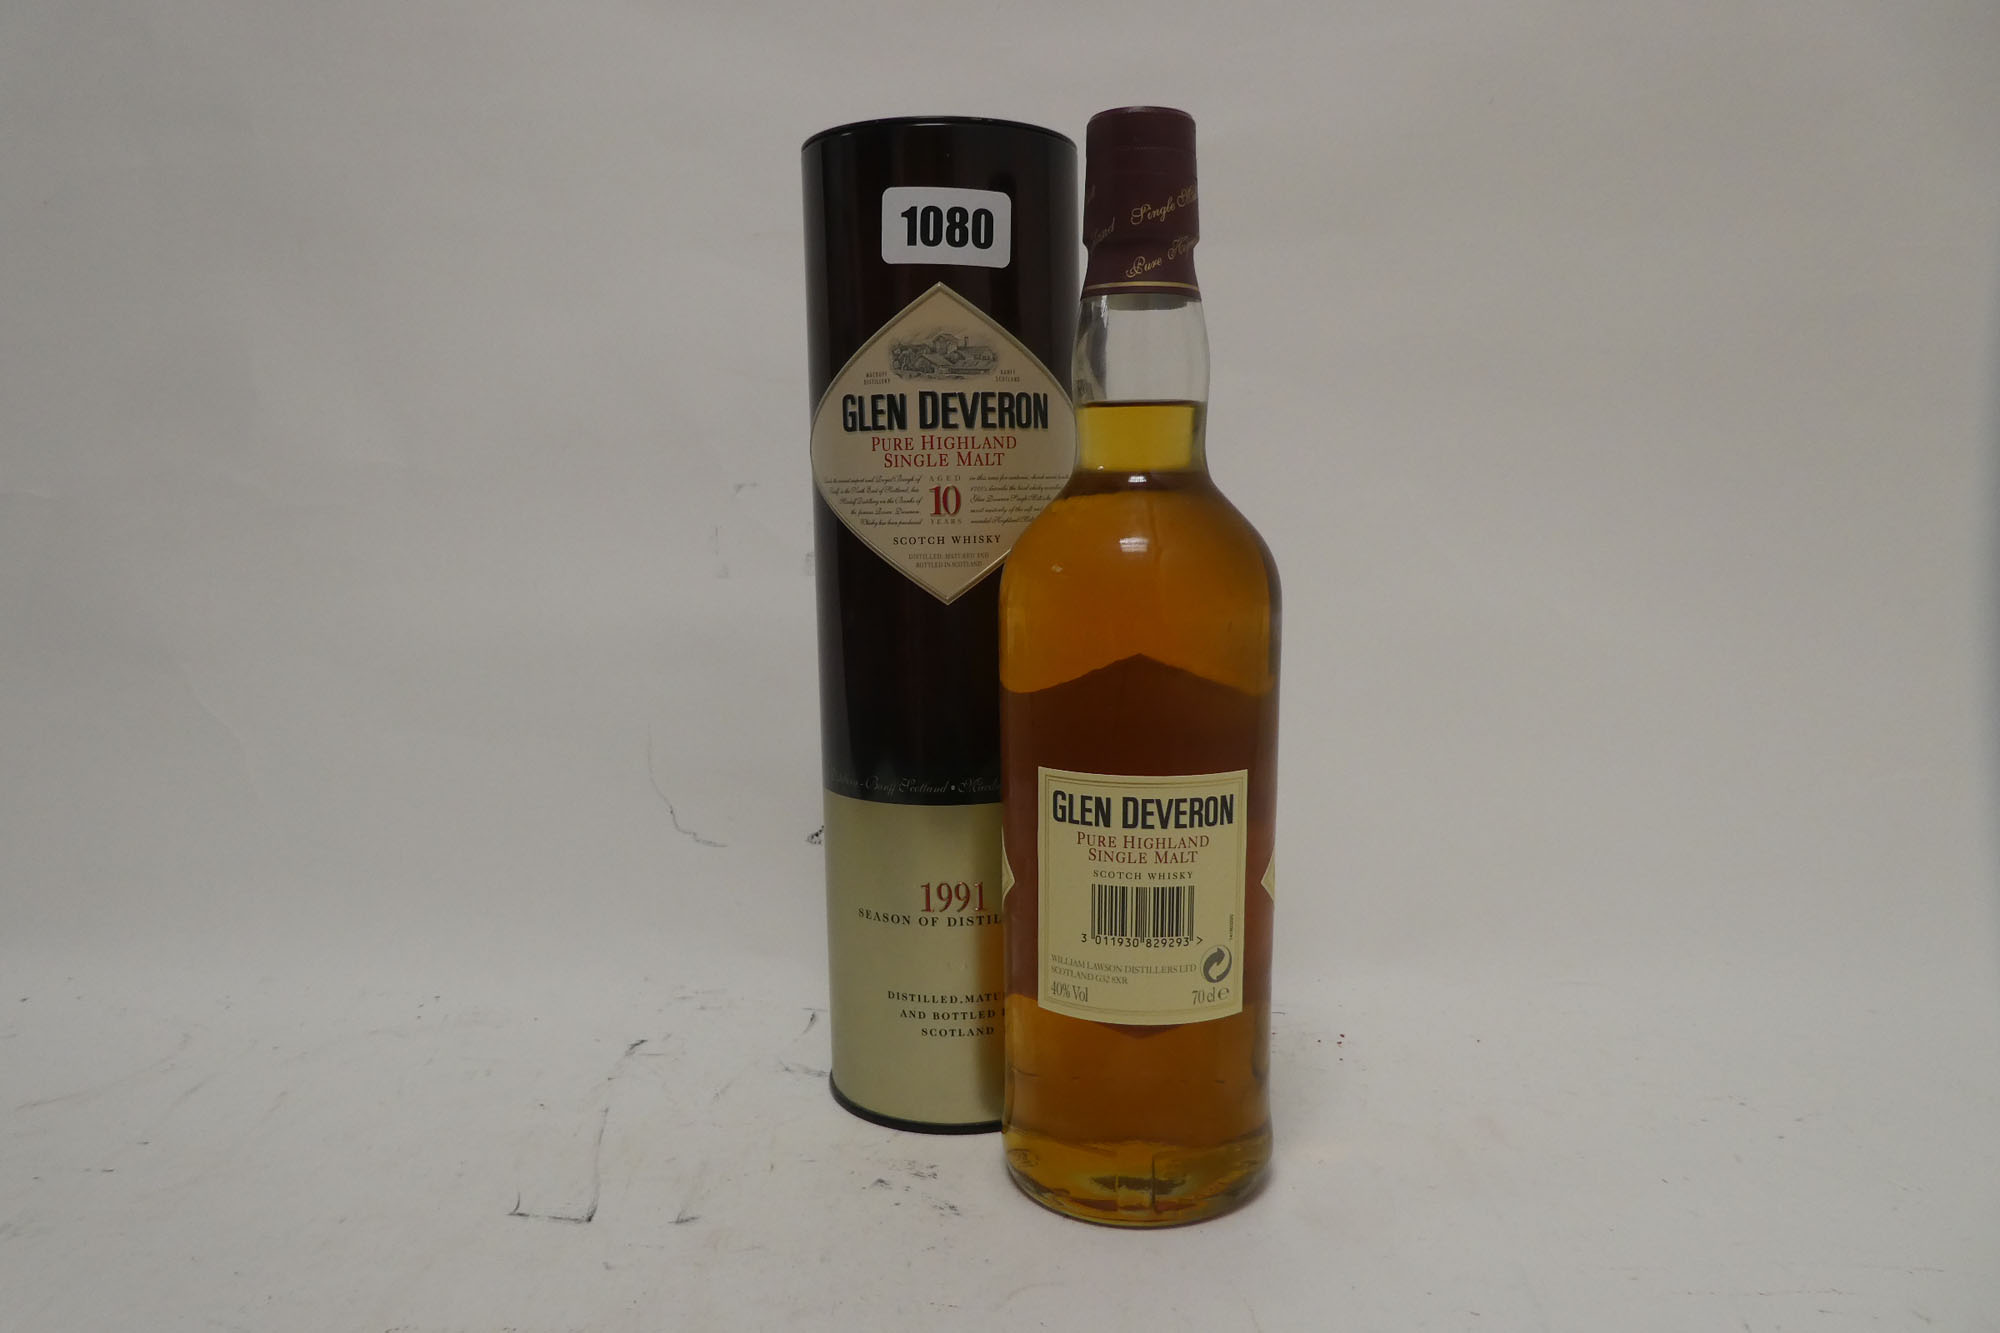 A bottle of Glen Deveron 10 year old Pure Highland Single Malt Scotch Whisky Distilled 1991 with - Image 2 of 2